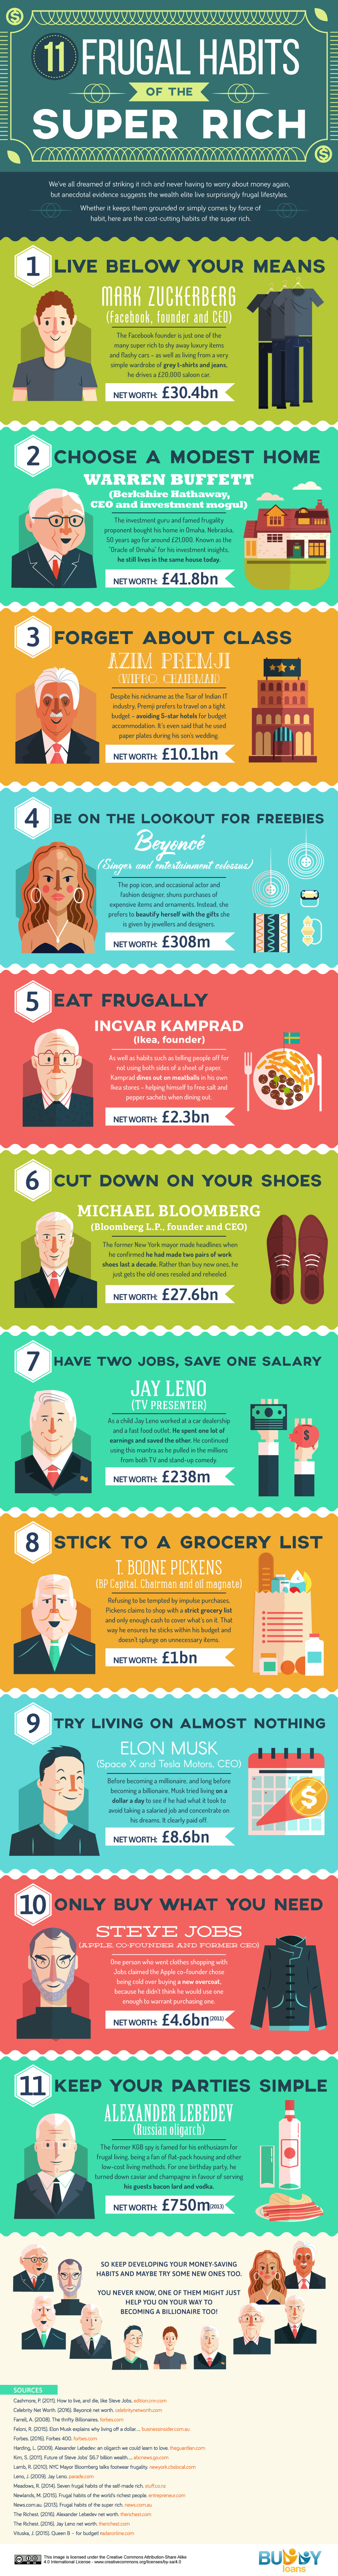 11-frugal-habits-of-the-super-rich